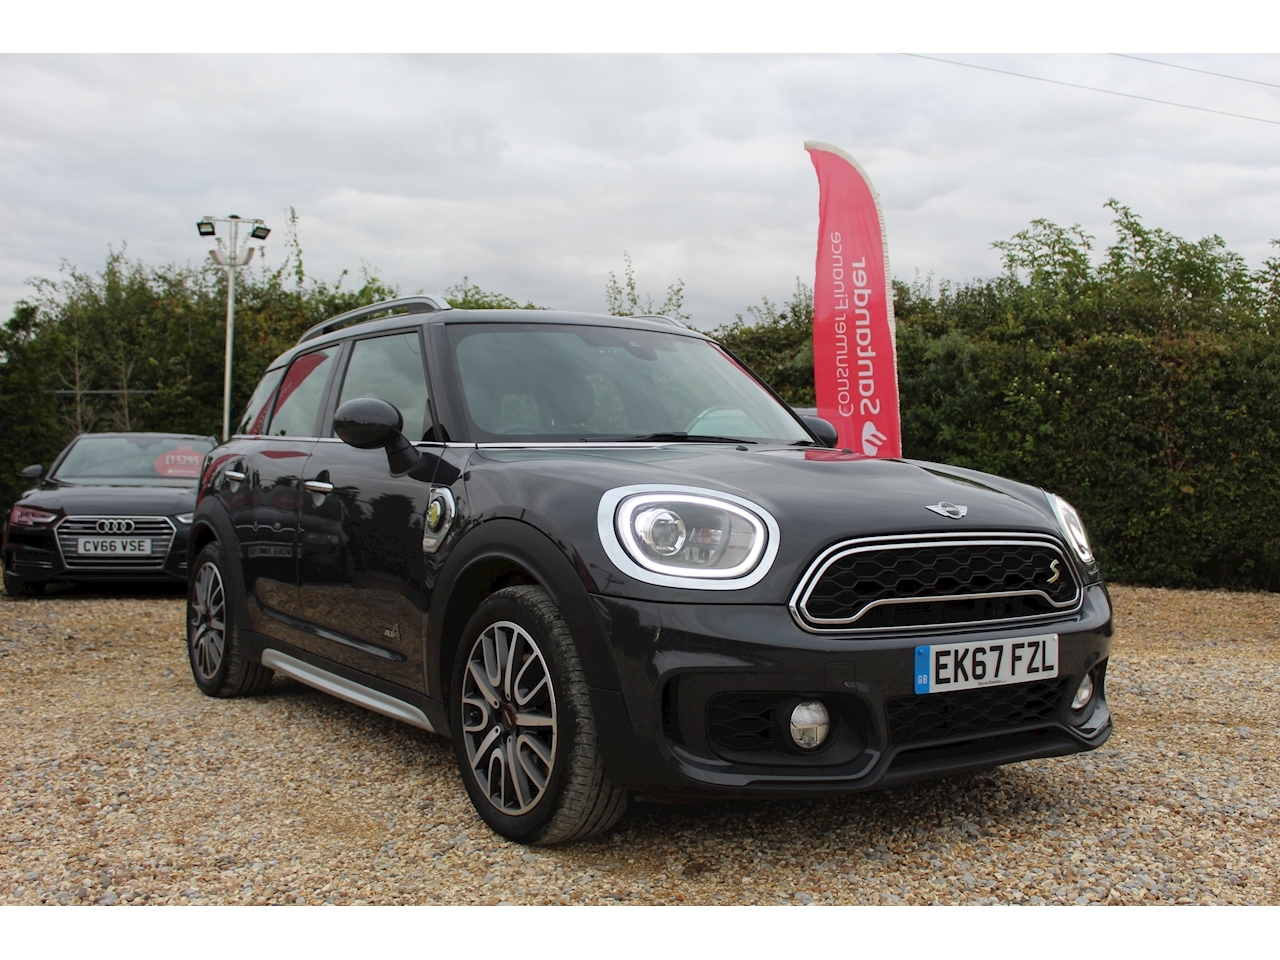 MINI Countryman Cooper S E Countryman ALL4 Countryman 1.5 Automatic Petrol Plug-in Hybrid